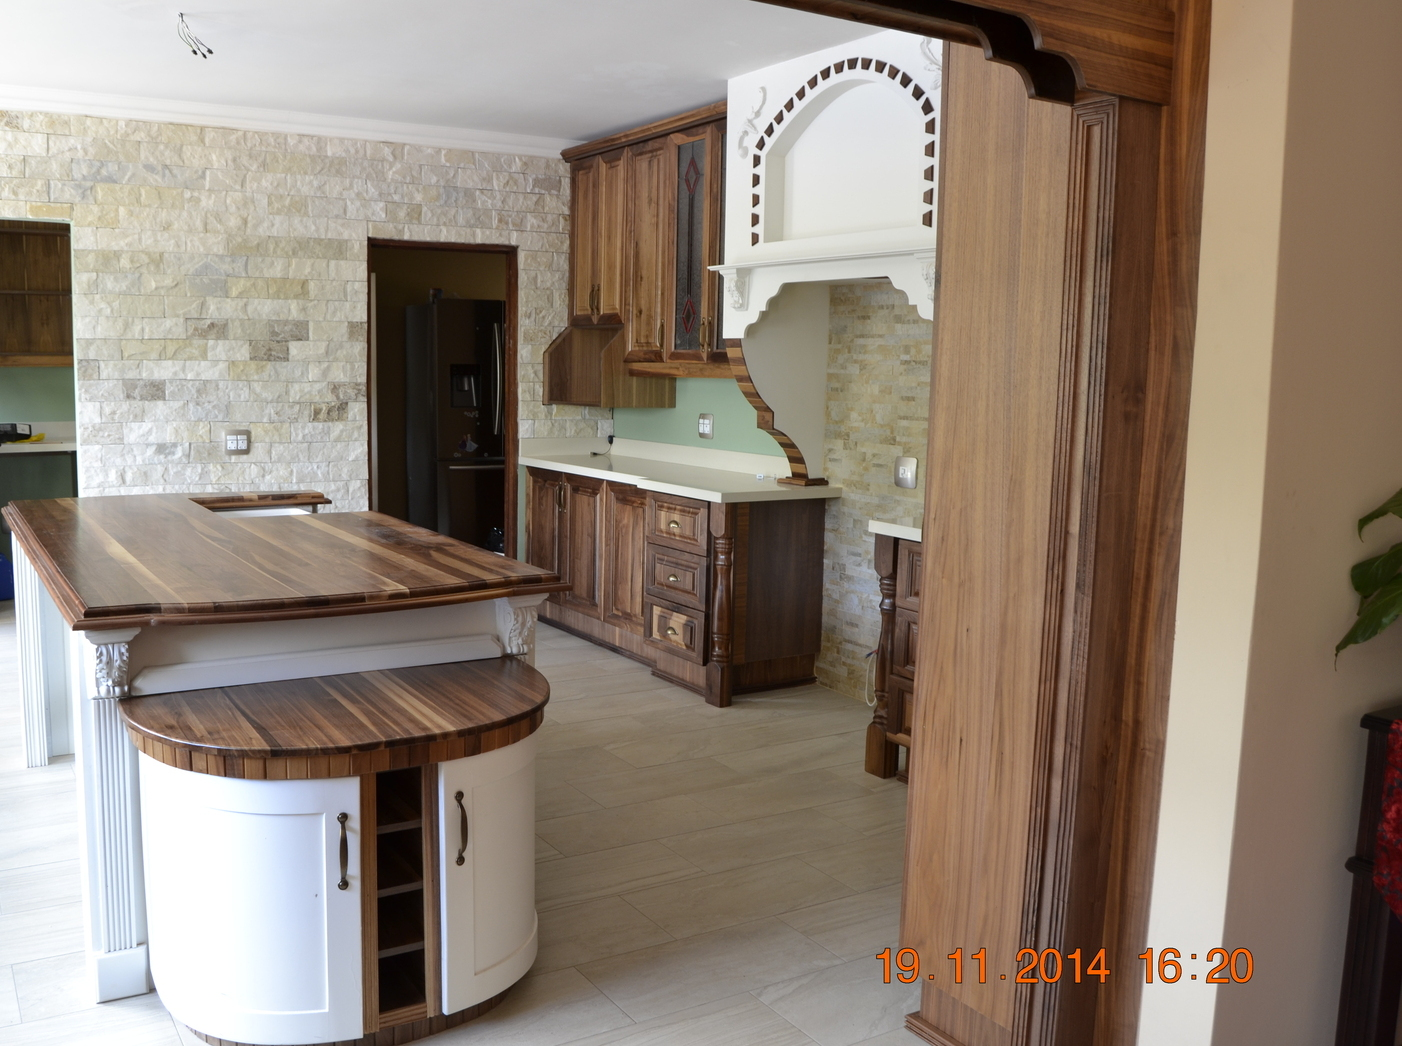 Most expensive kitchen completed for 2014 nico 39 s kitchens for Luxury kitchen johannesburg